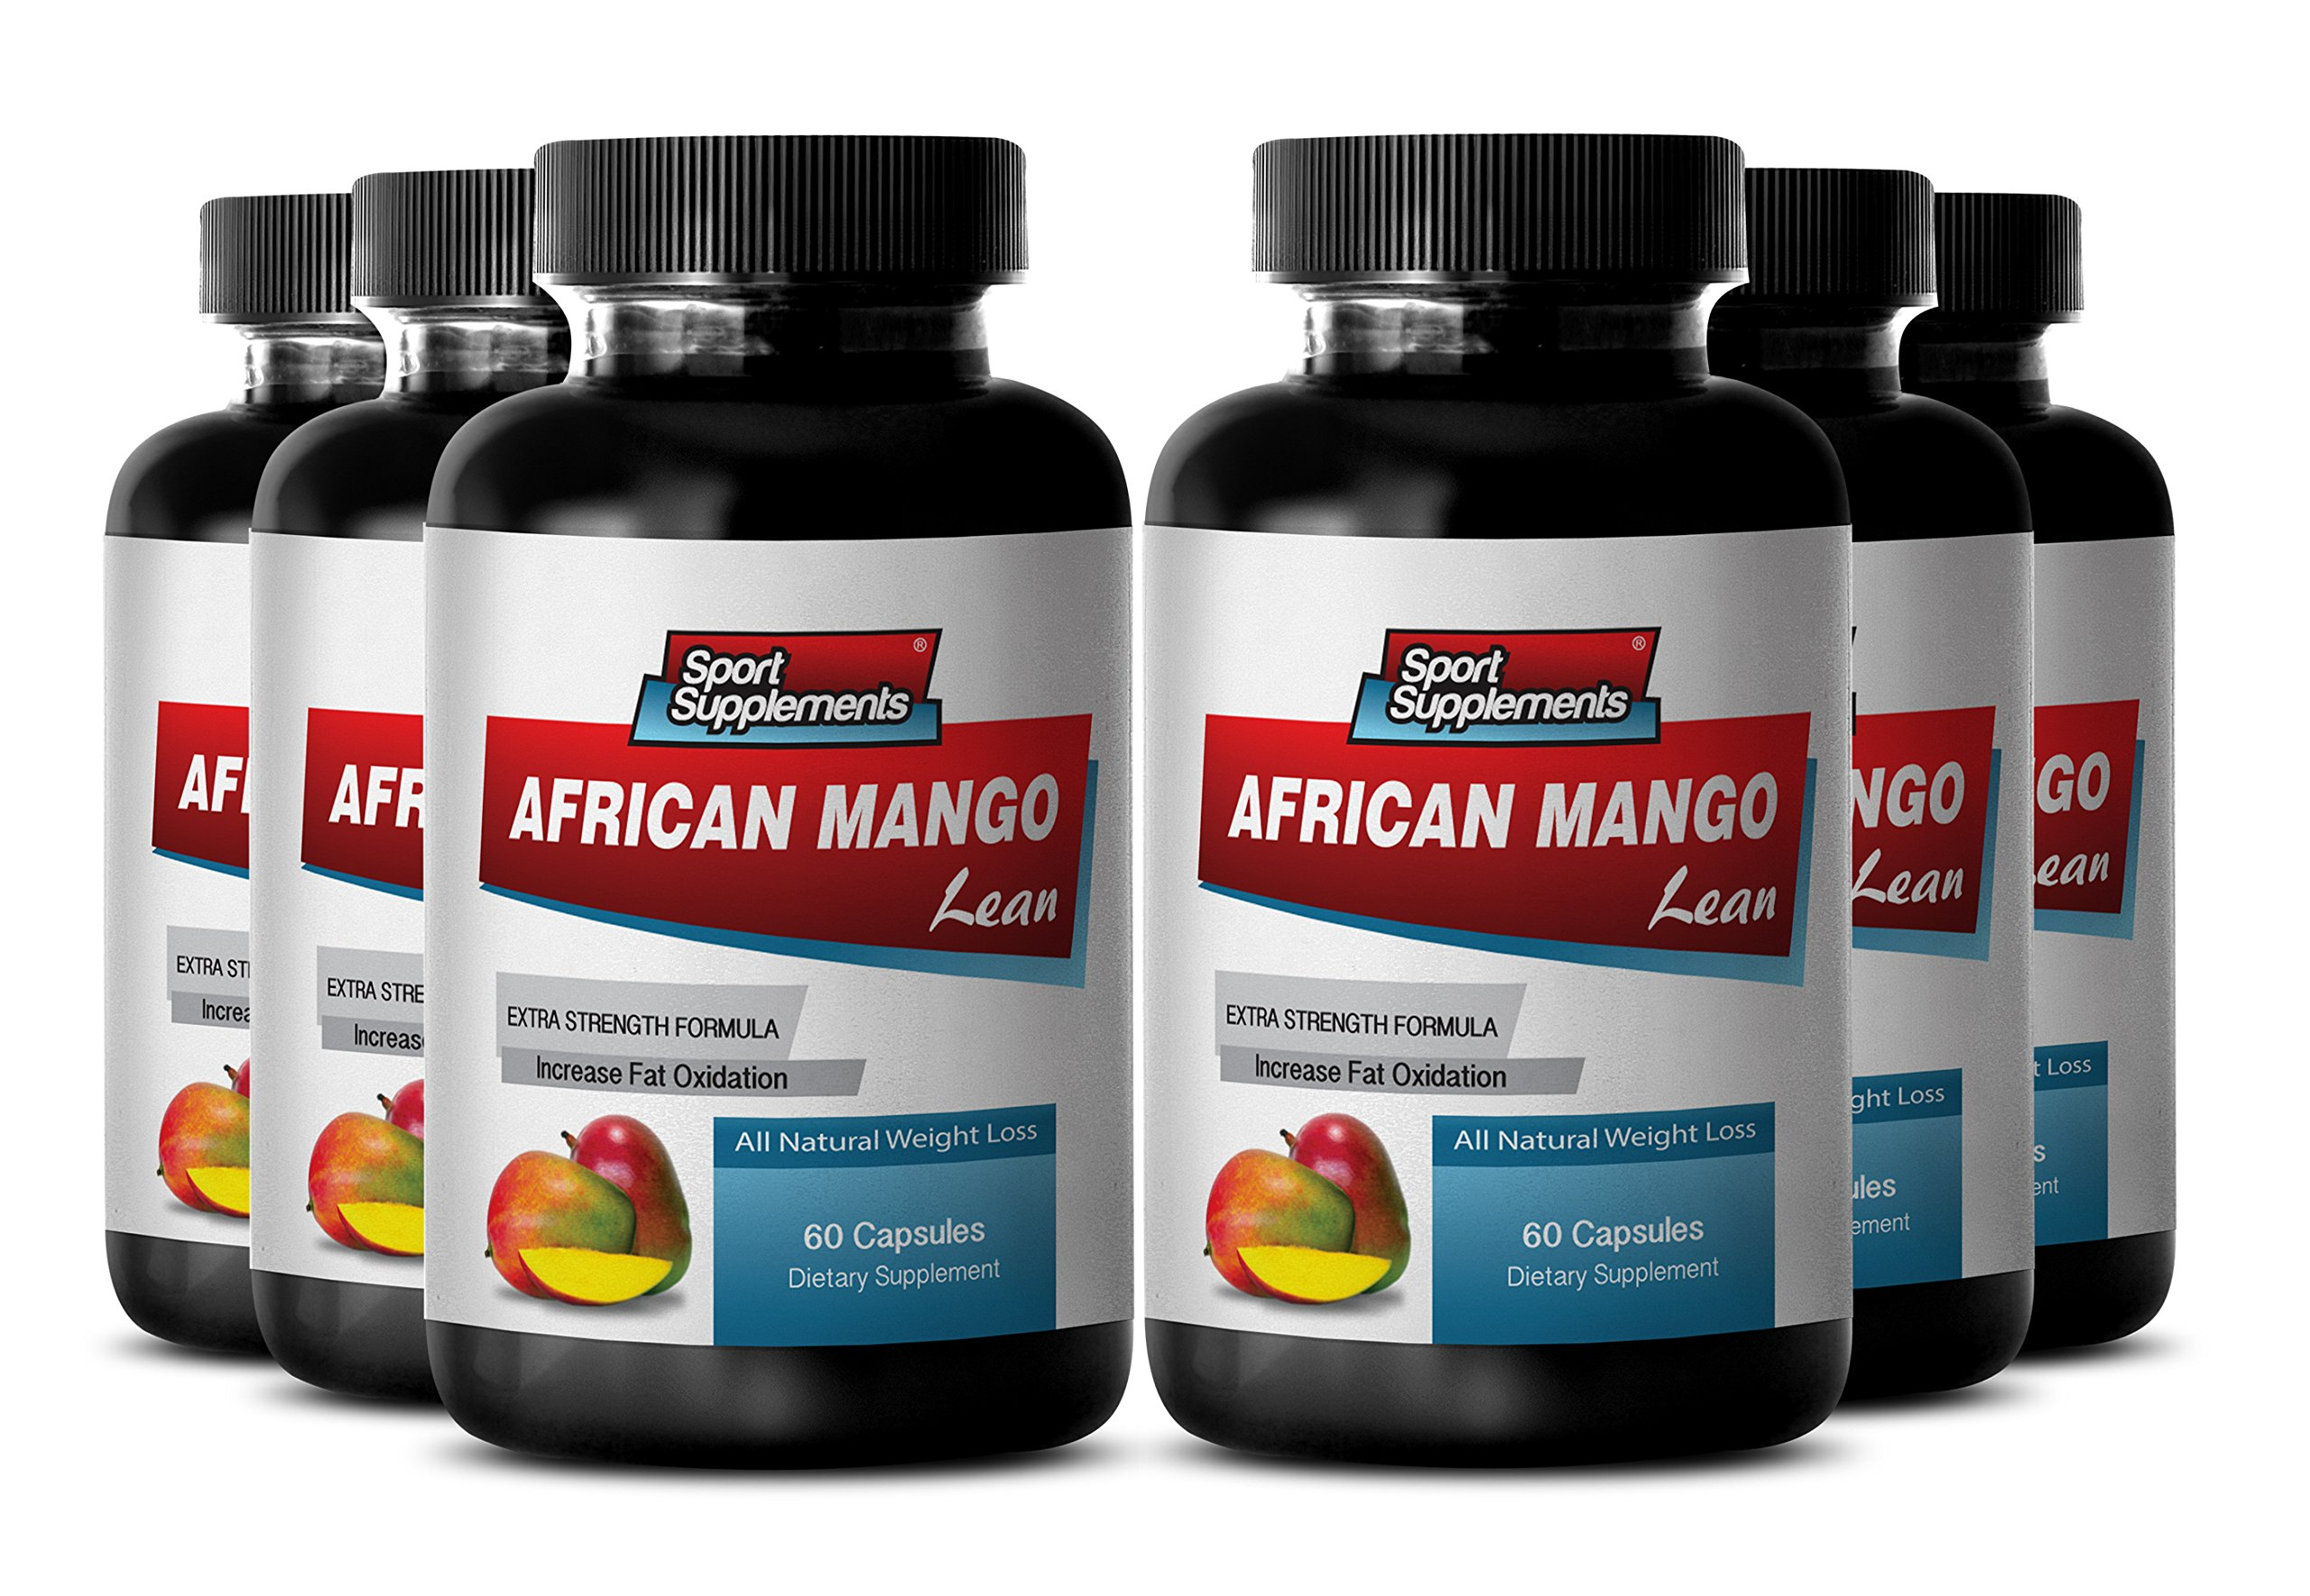 Burn calories - AFRICAN MANGO EXTRACT with Green Tea, Resveratrol, Kelp, Grapefruit 1200 Mg - African mango detox - 6 Bottles 360 capsules